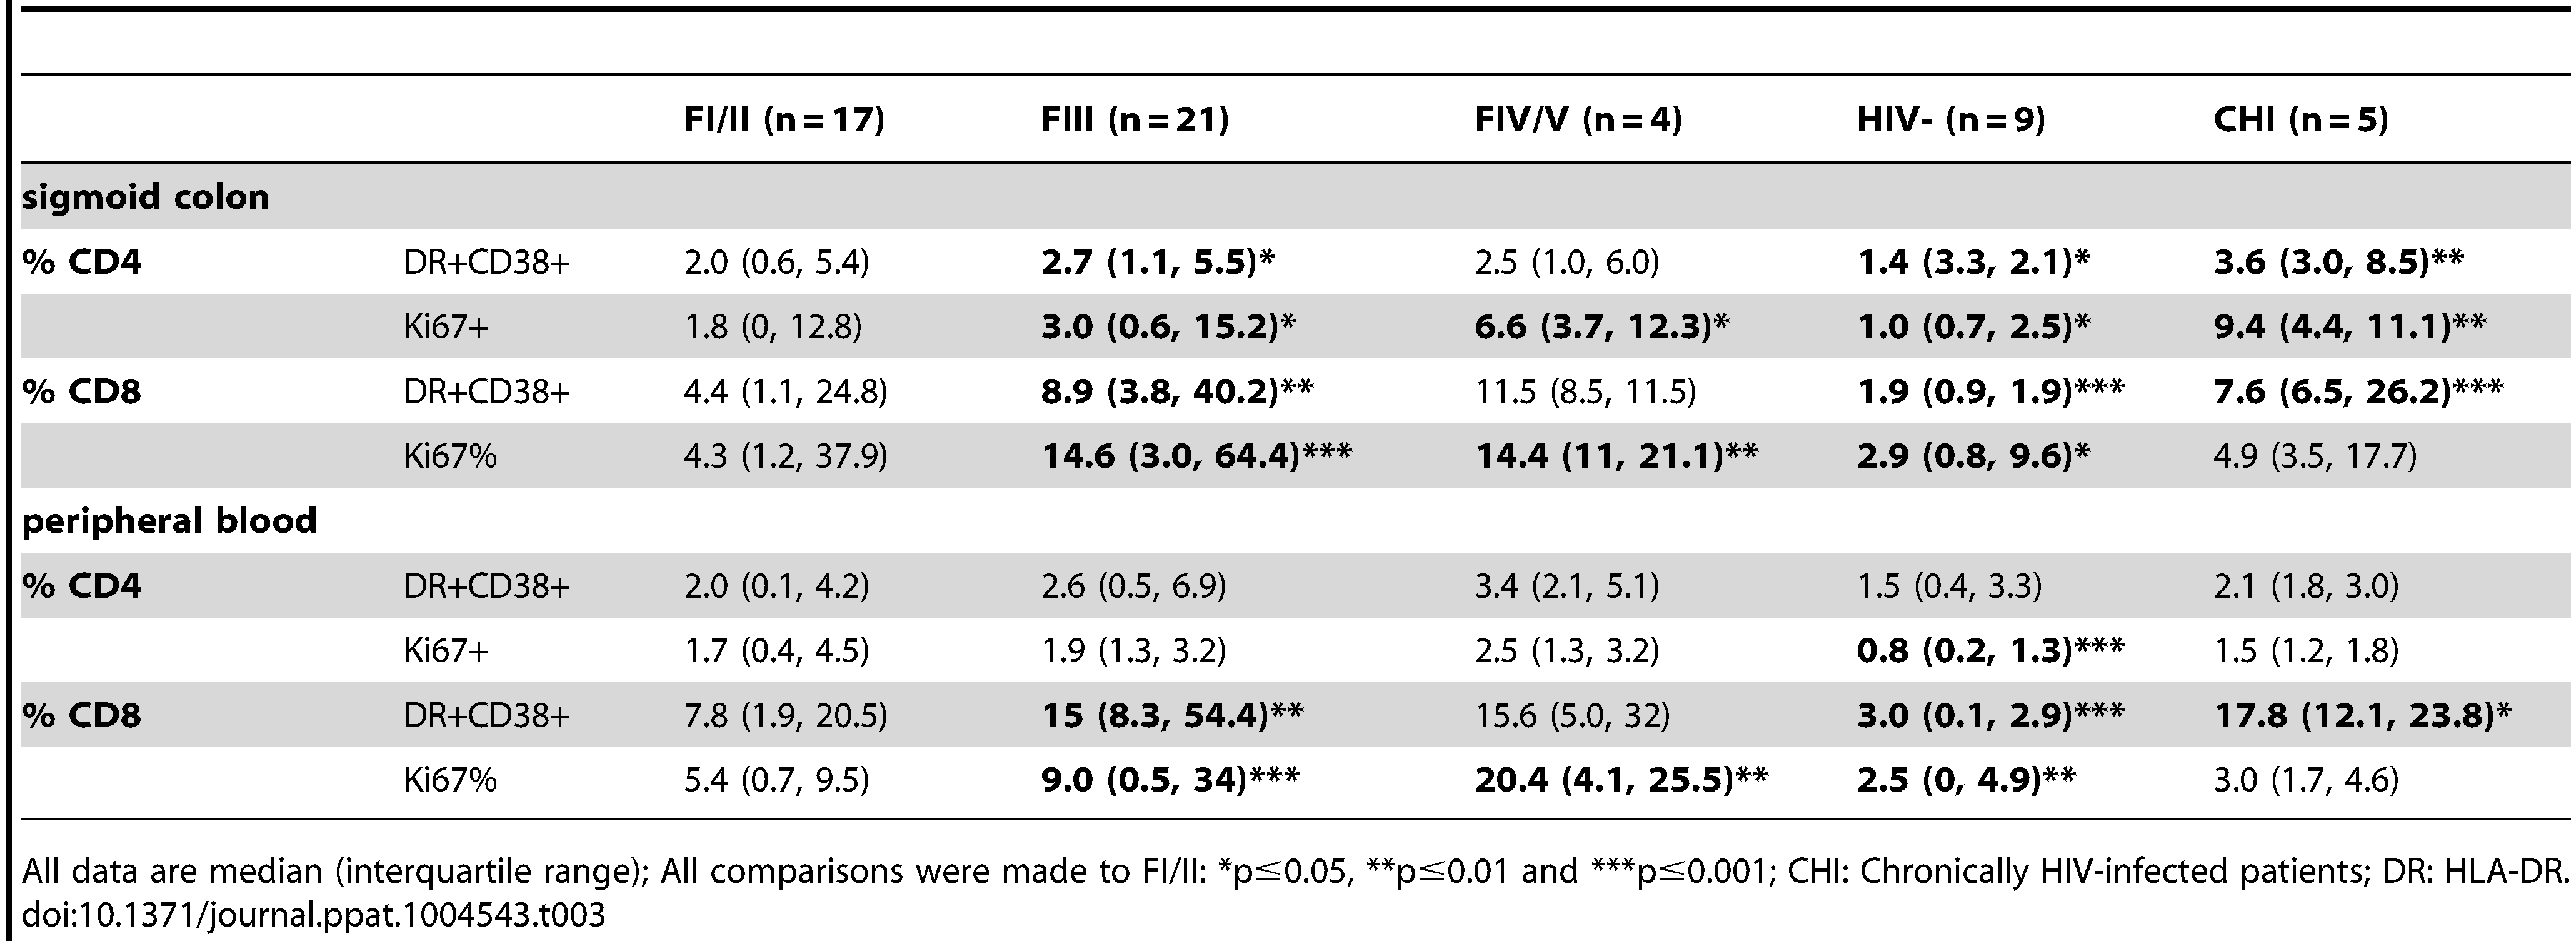 Percentage of activated (HLA-DR+CD38+) and cycling (Ki67+) CD4+ and CD8+ T cells in sigmoid colon and peripheral blood at baseline in HIV-, FI/II, FIII, FIV/V and CHI subjects.